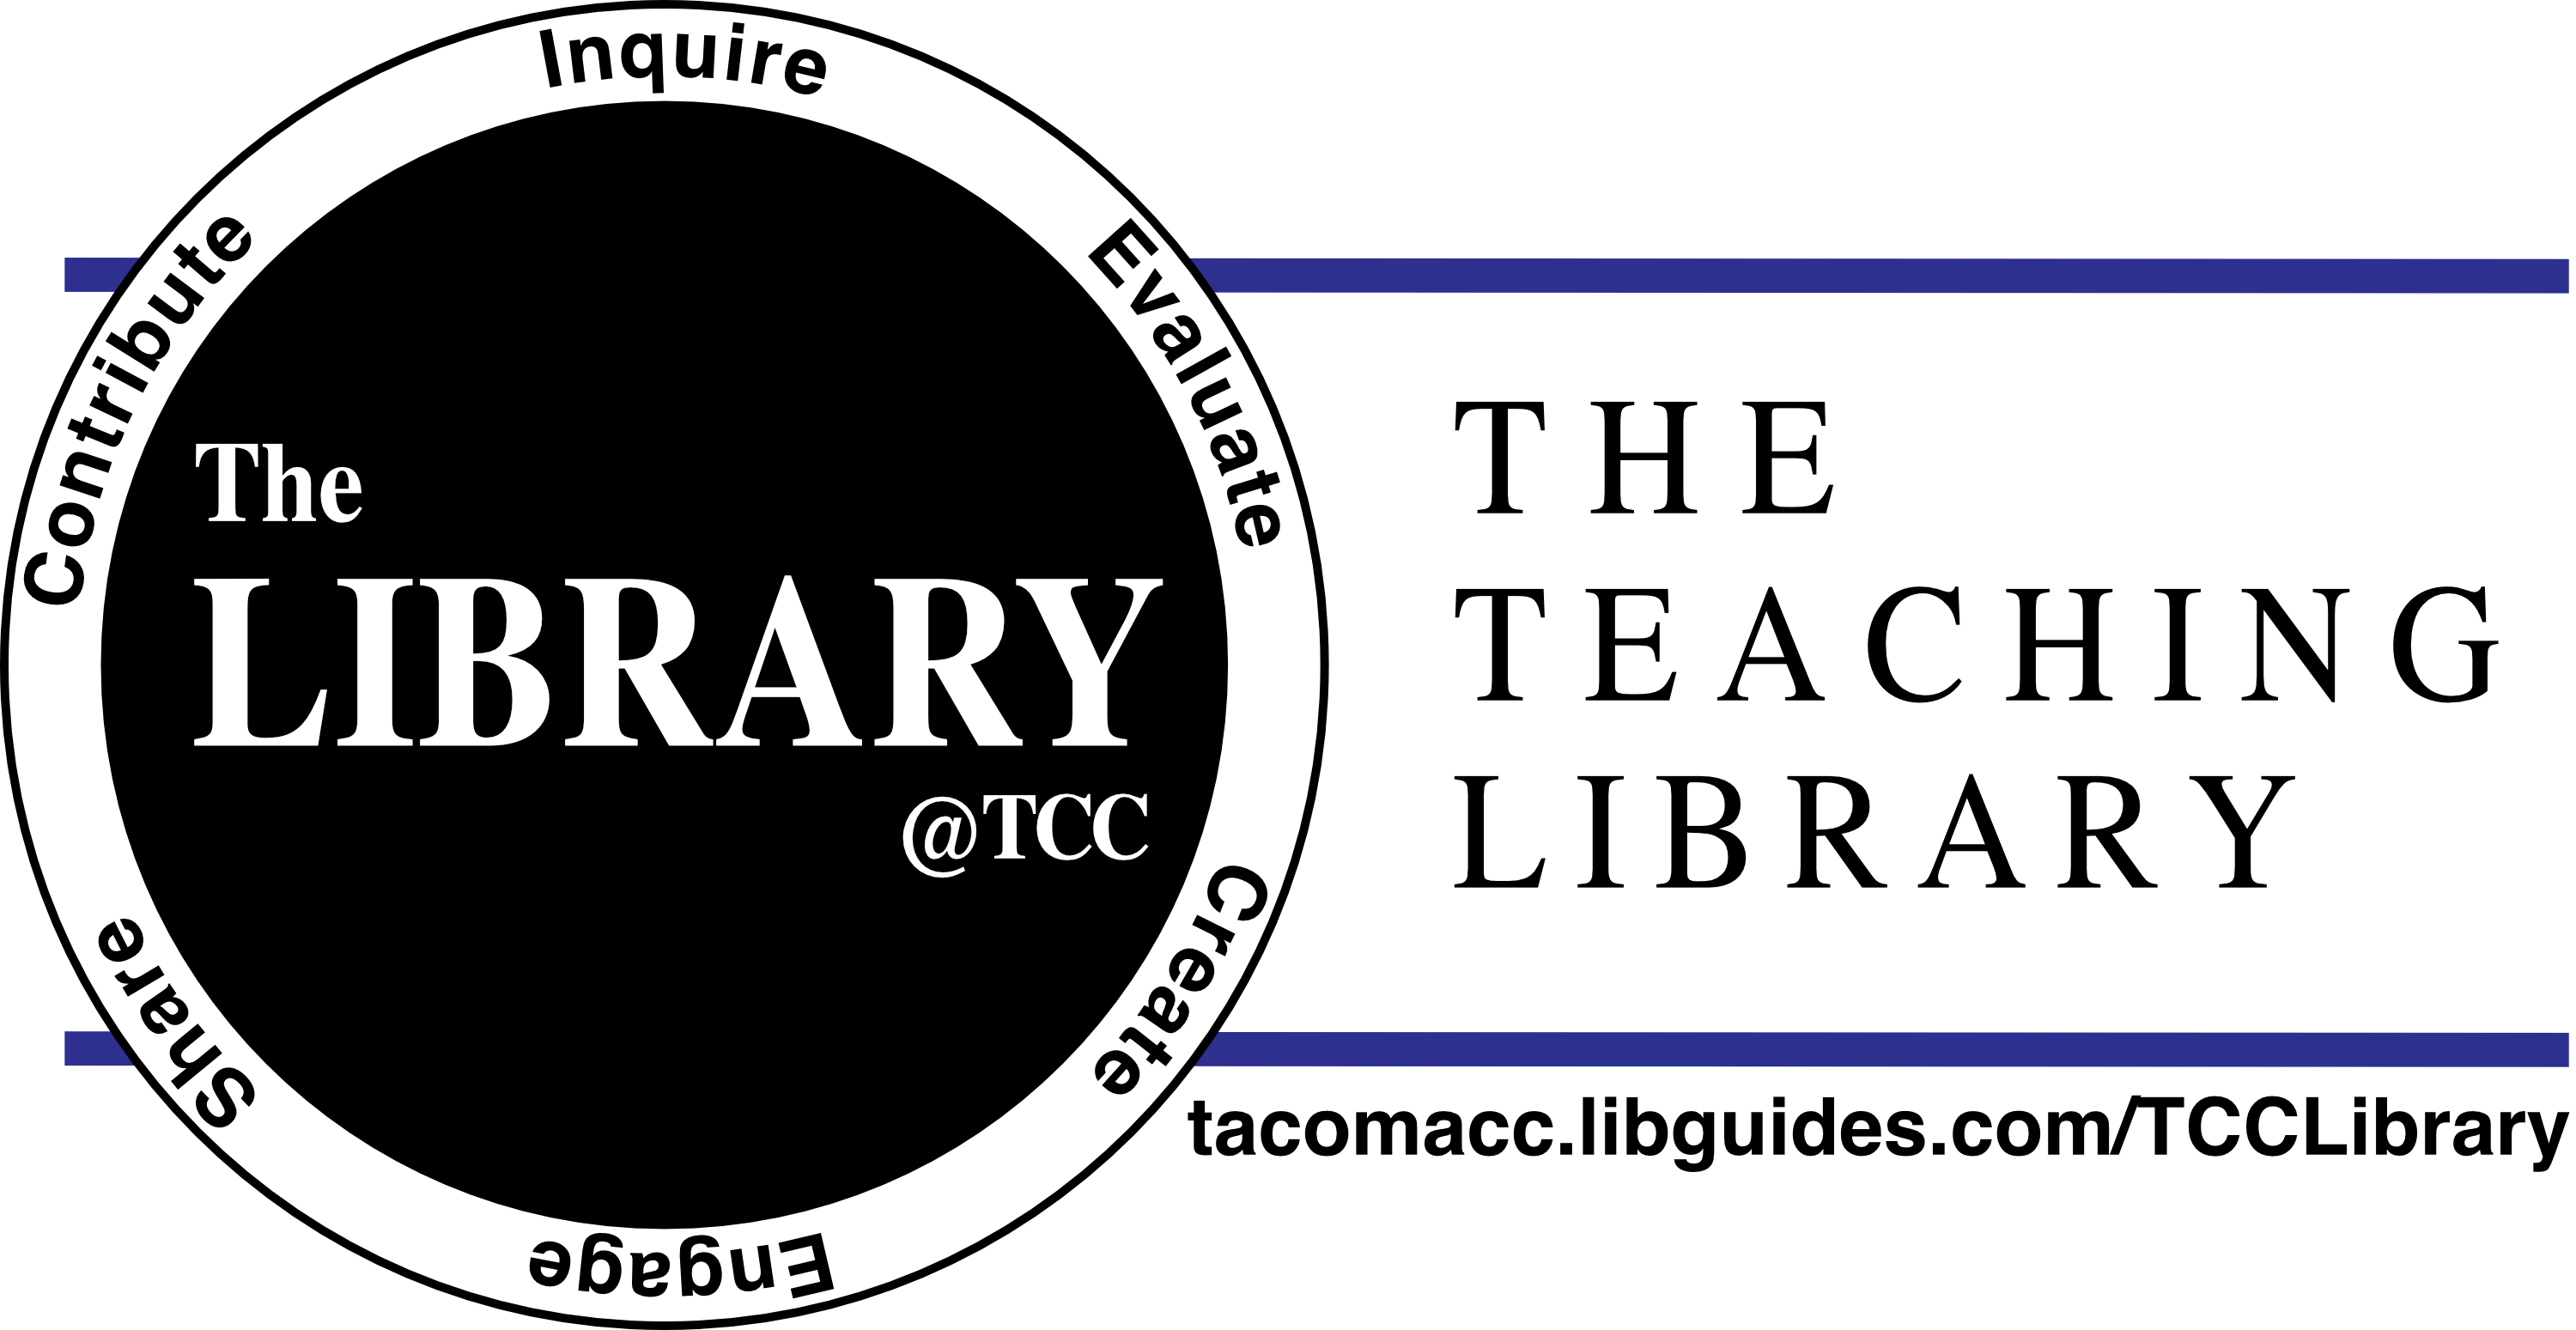 TCC Library Logo: The library at TCC: The teaching library. With URL: tacomacc.libguides.com/TCCLibrary